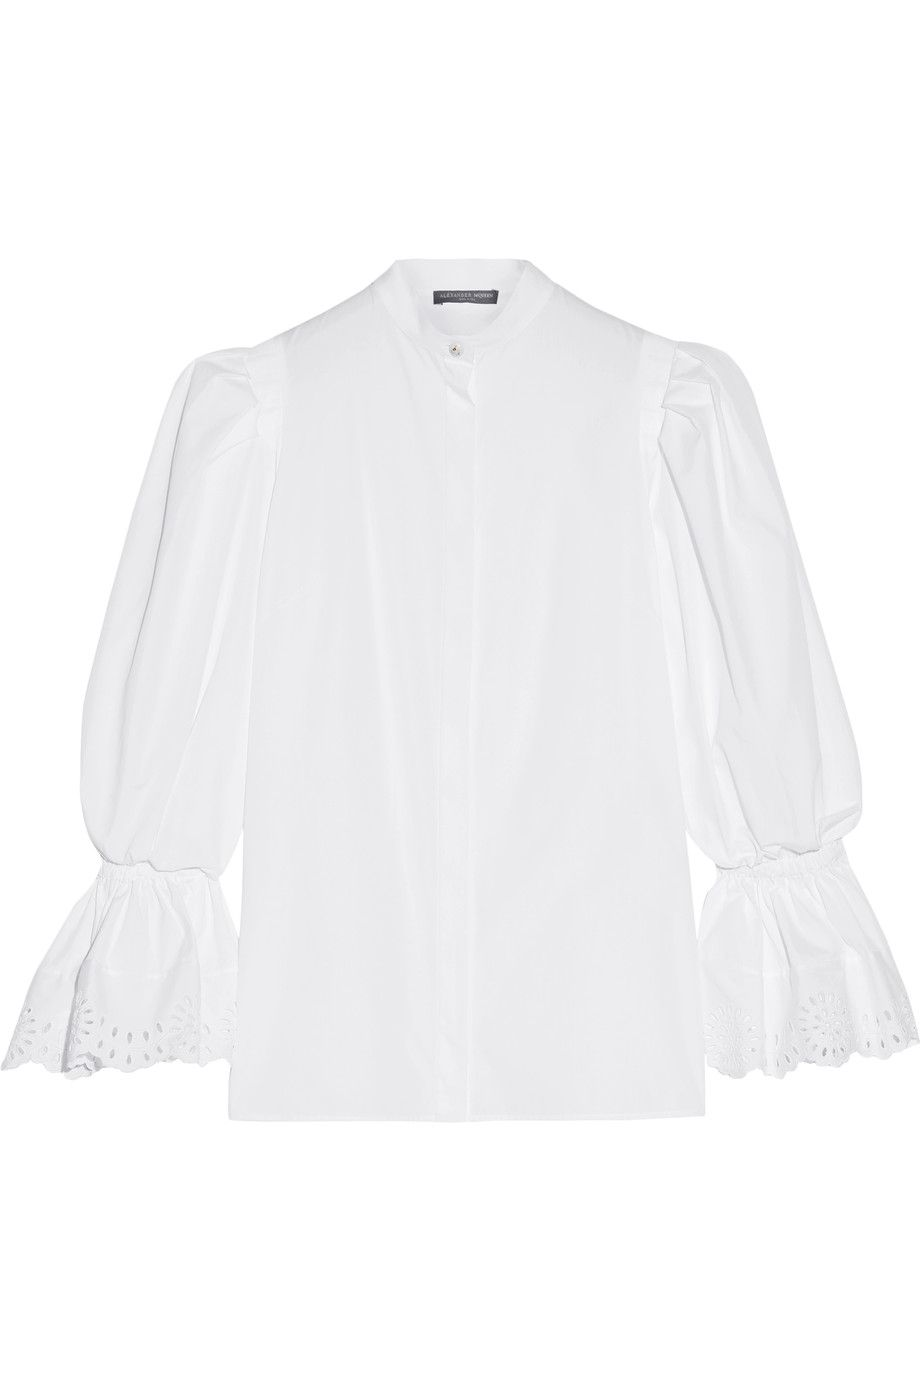 Quality Free Shipping Outlet For Sale Cheap Price Alexander Mcqueen Woman Broderie Anglaise-trimmed Cotton-poplin Blouse White Size 48 Alexander McQueen Comfortable Cheap Online Free Shipping Classic eSN49PZ